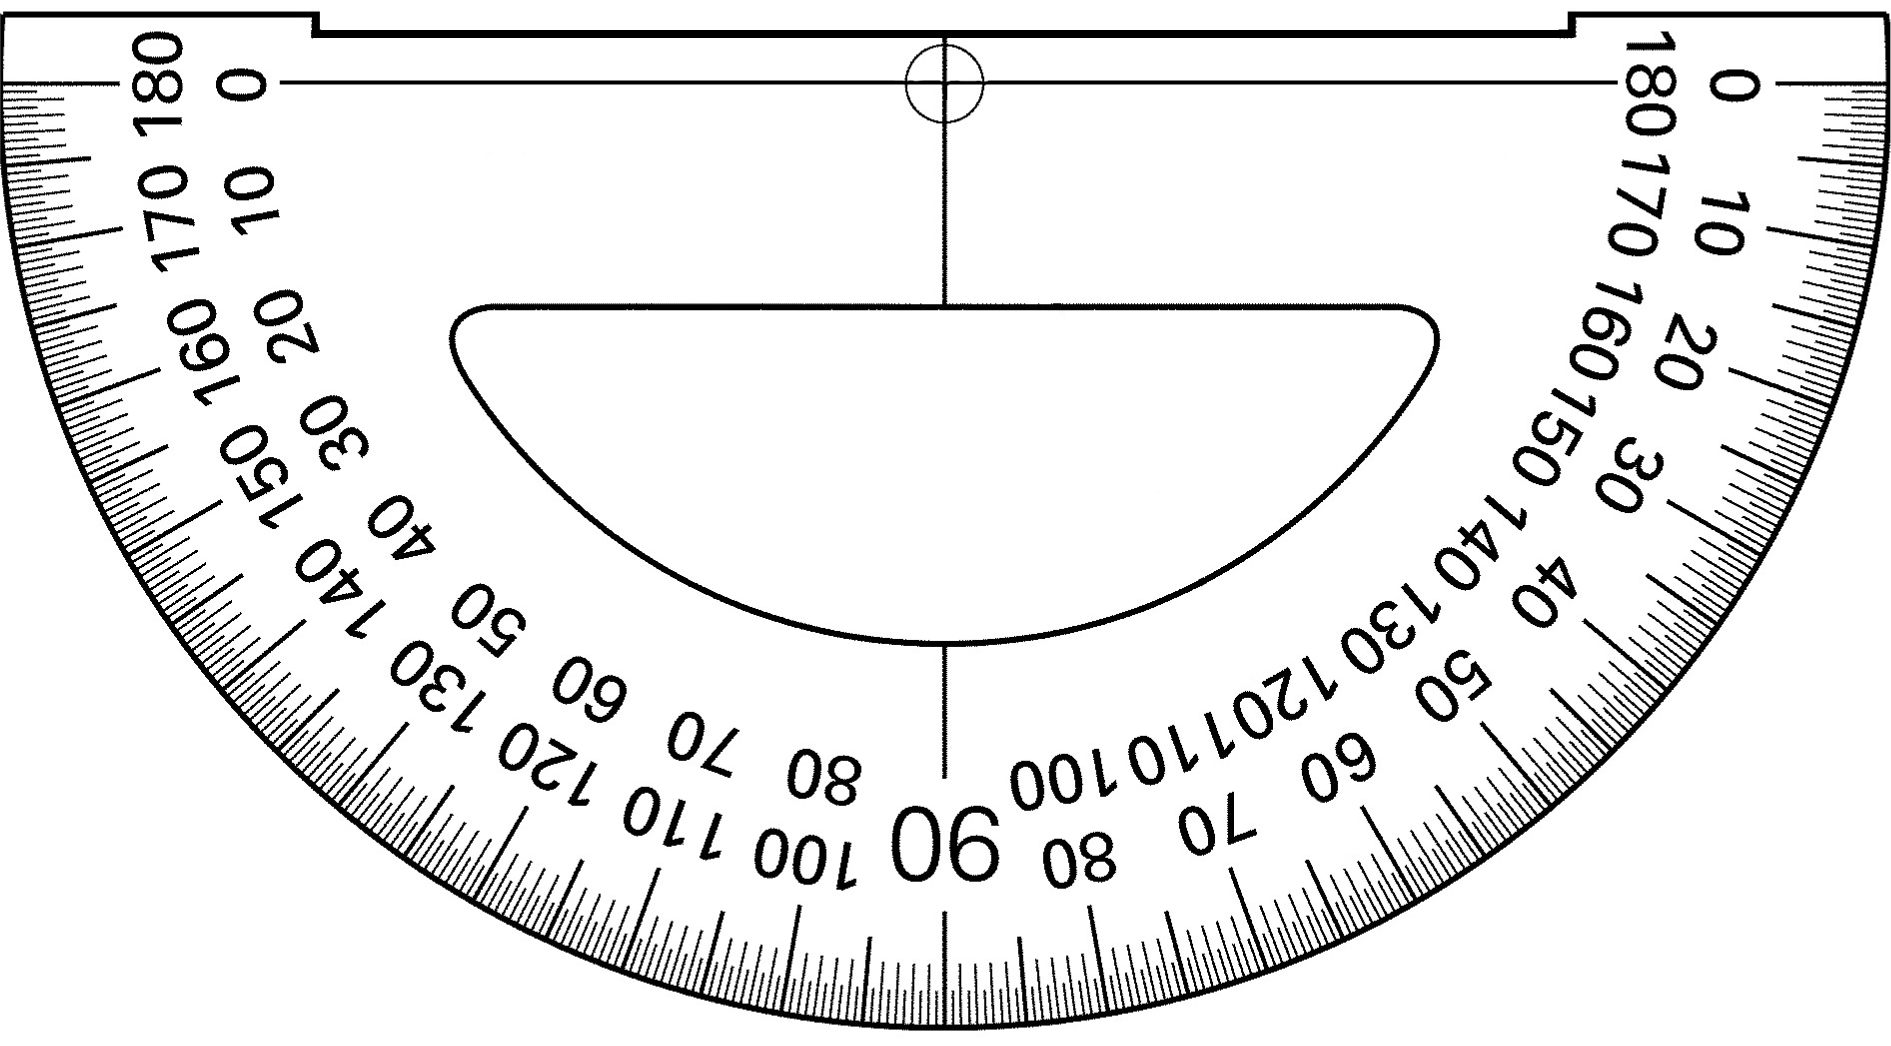 worksheet Protractor Print printable protractors pictures of a protractor multiplication modern measuring instuments graphics3 protractors